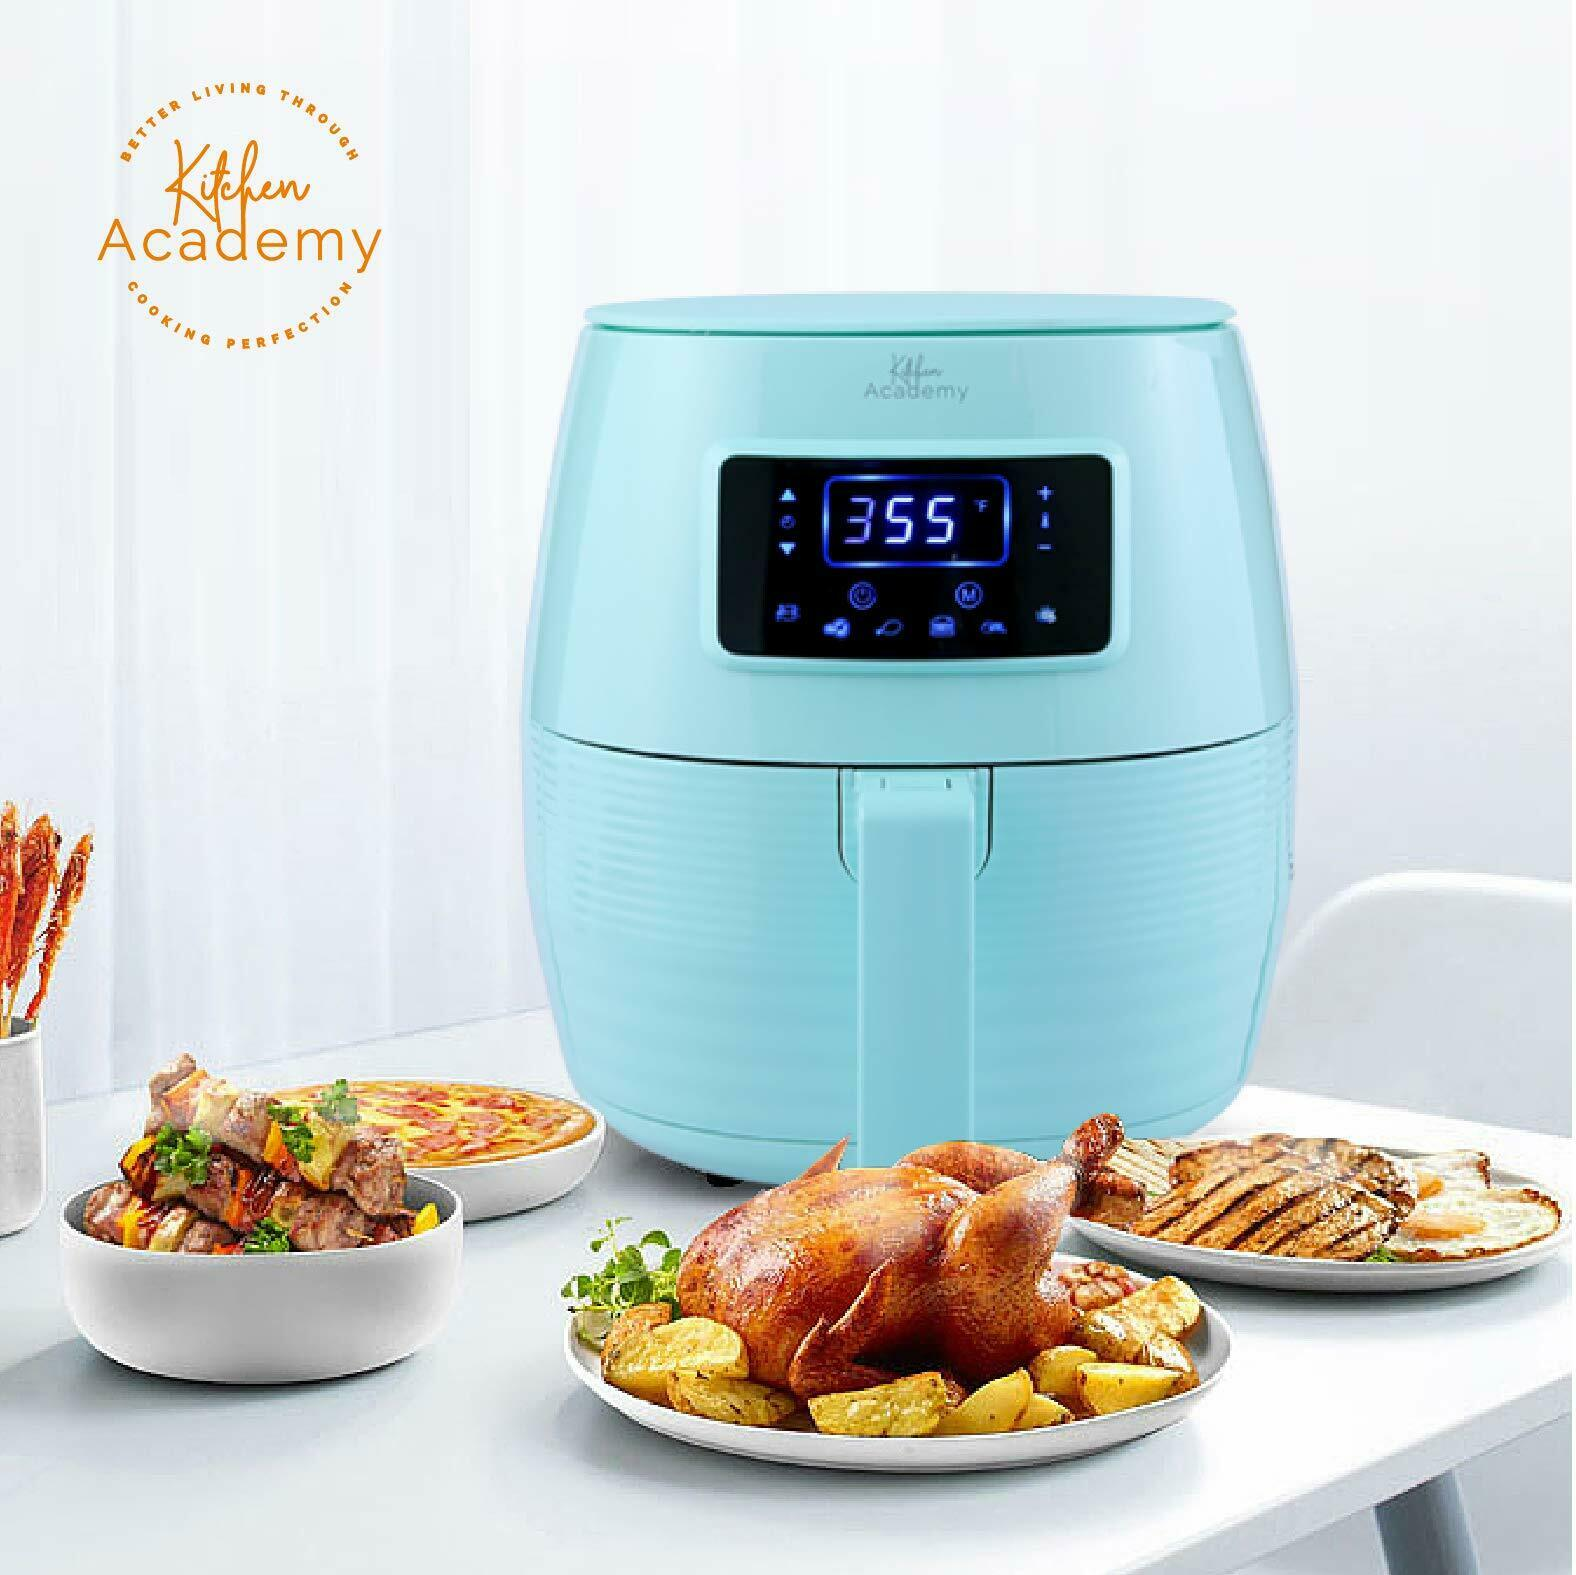 Kitchen Academy Air Fryer ,5.8 Qt Electric Hot Air Fryers,Aq